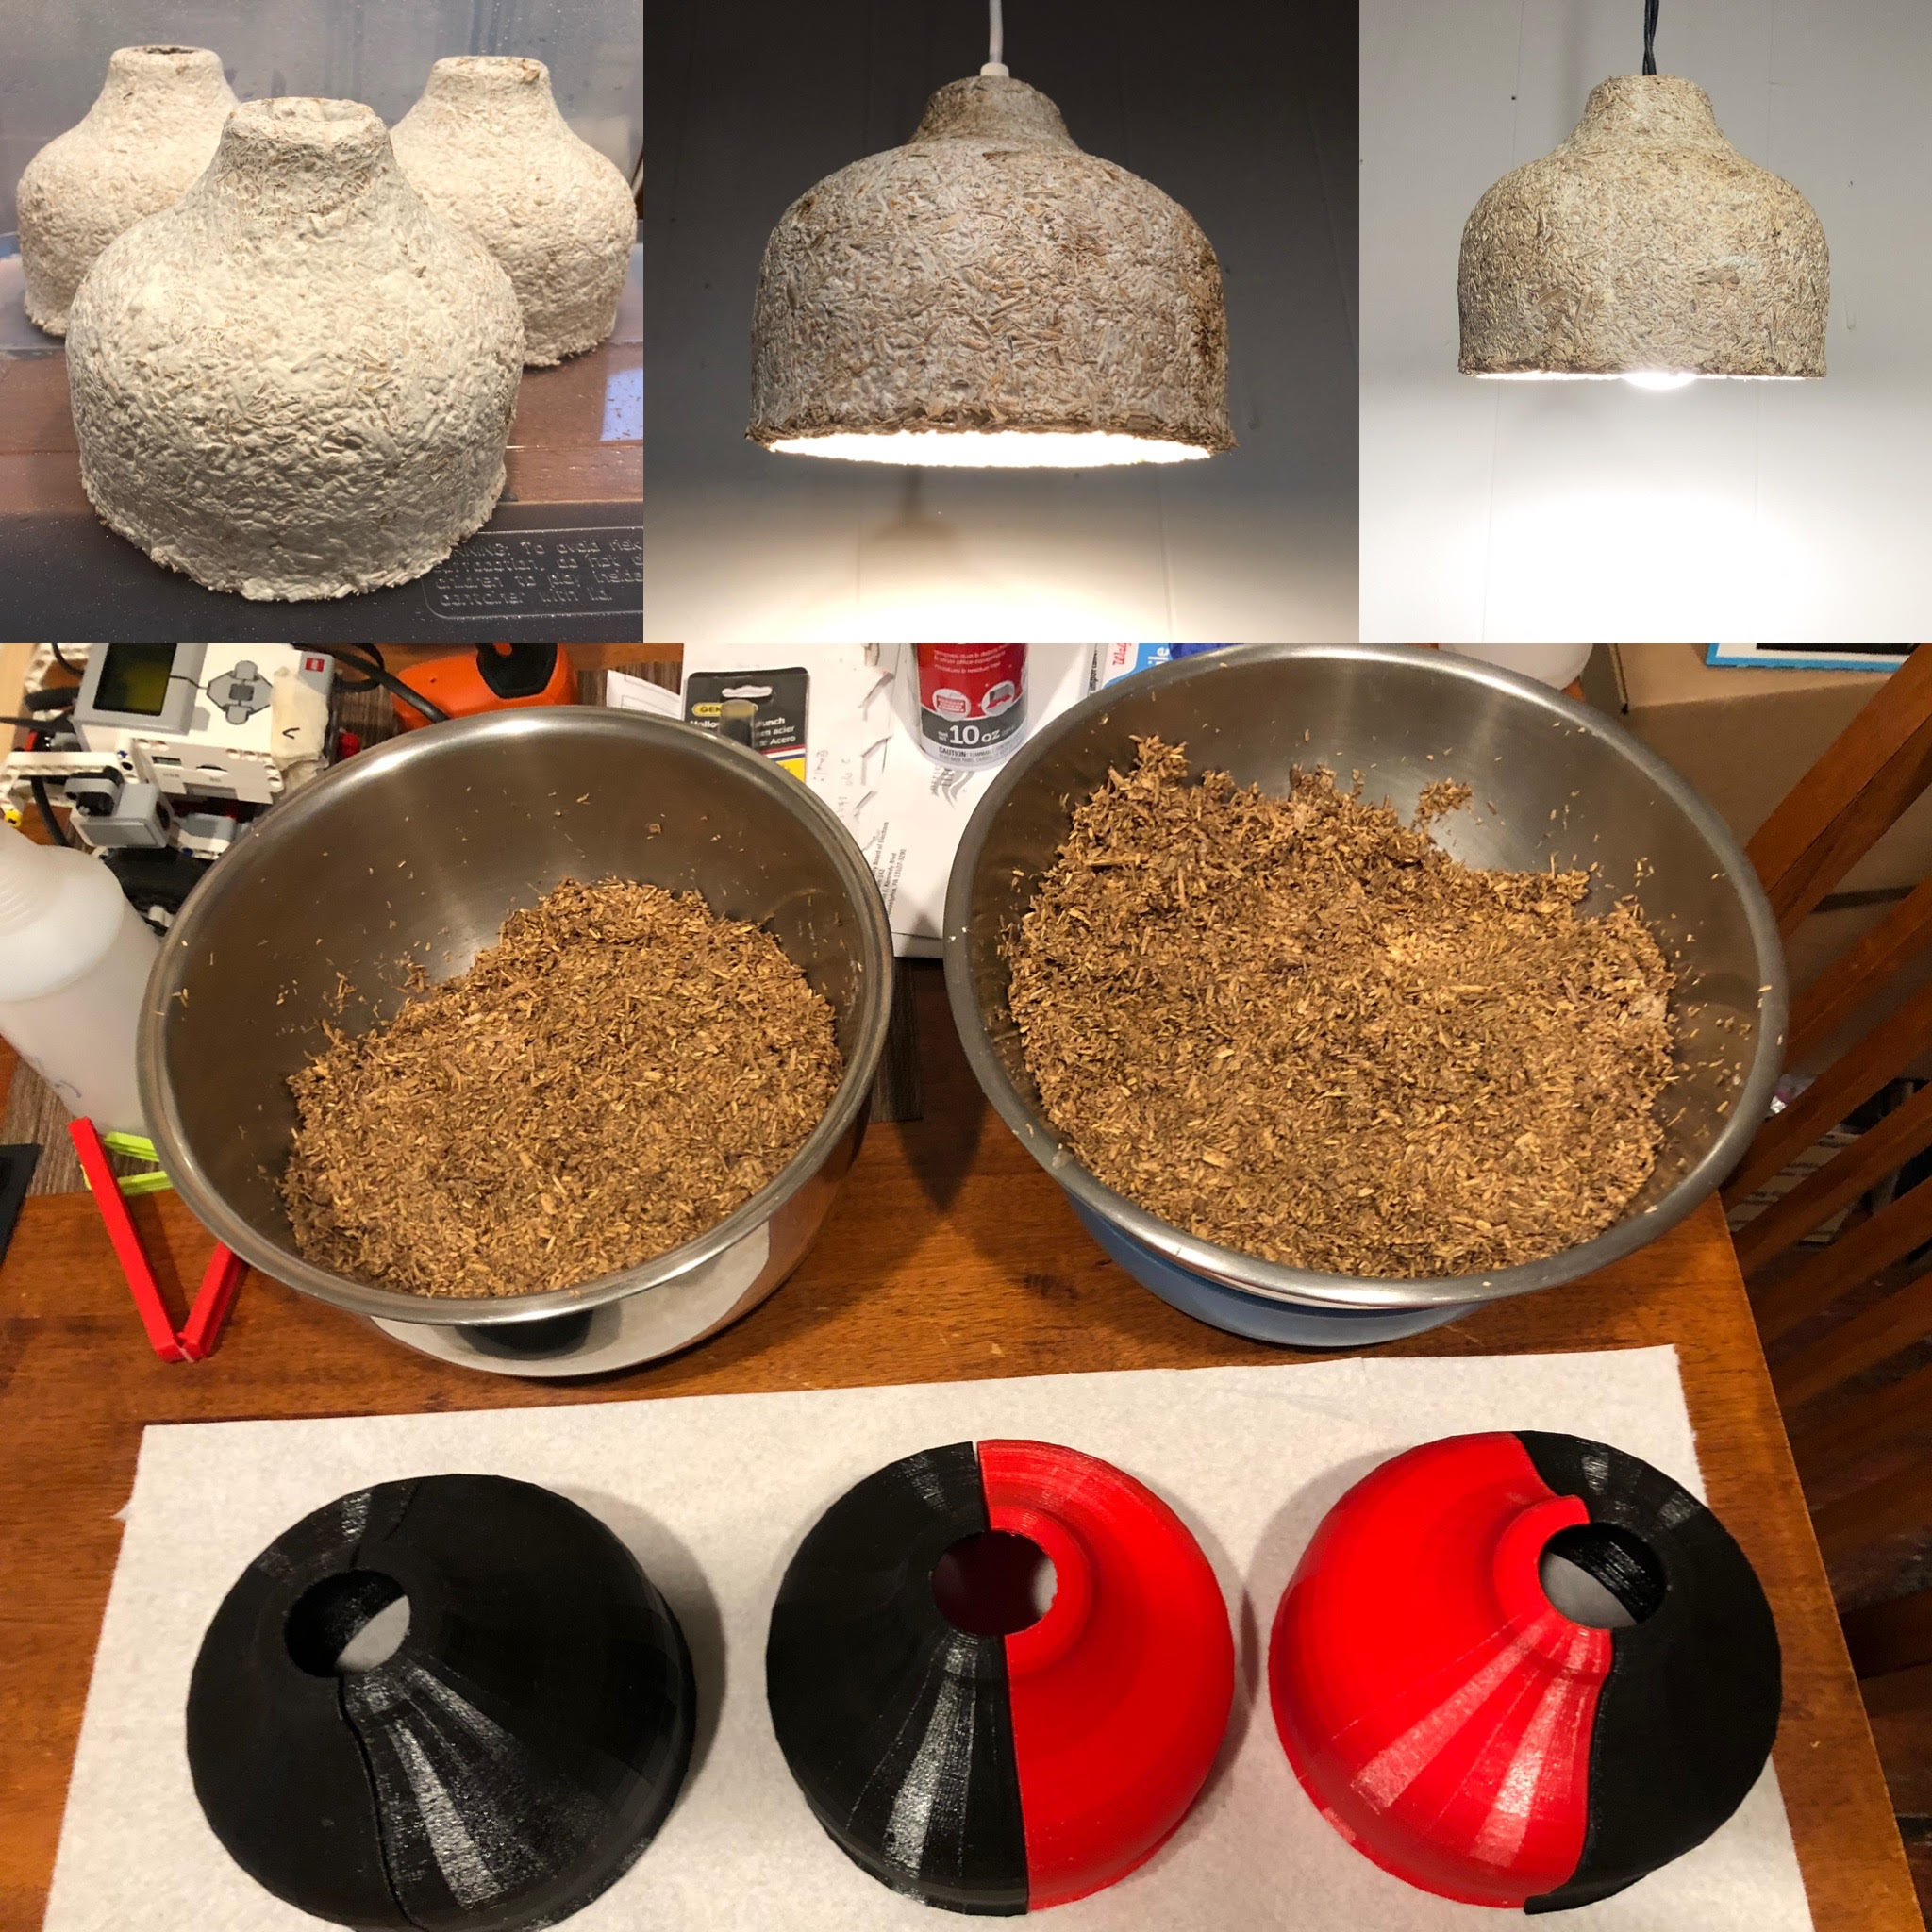 Multiple images of Christopher Sweeney's MycoLights including the shades alone, lit up, and the process of being molded.